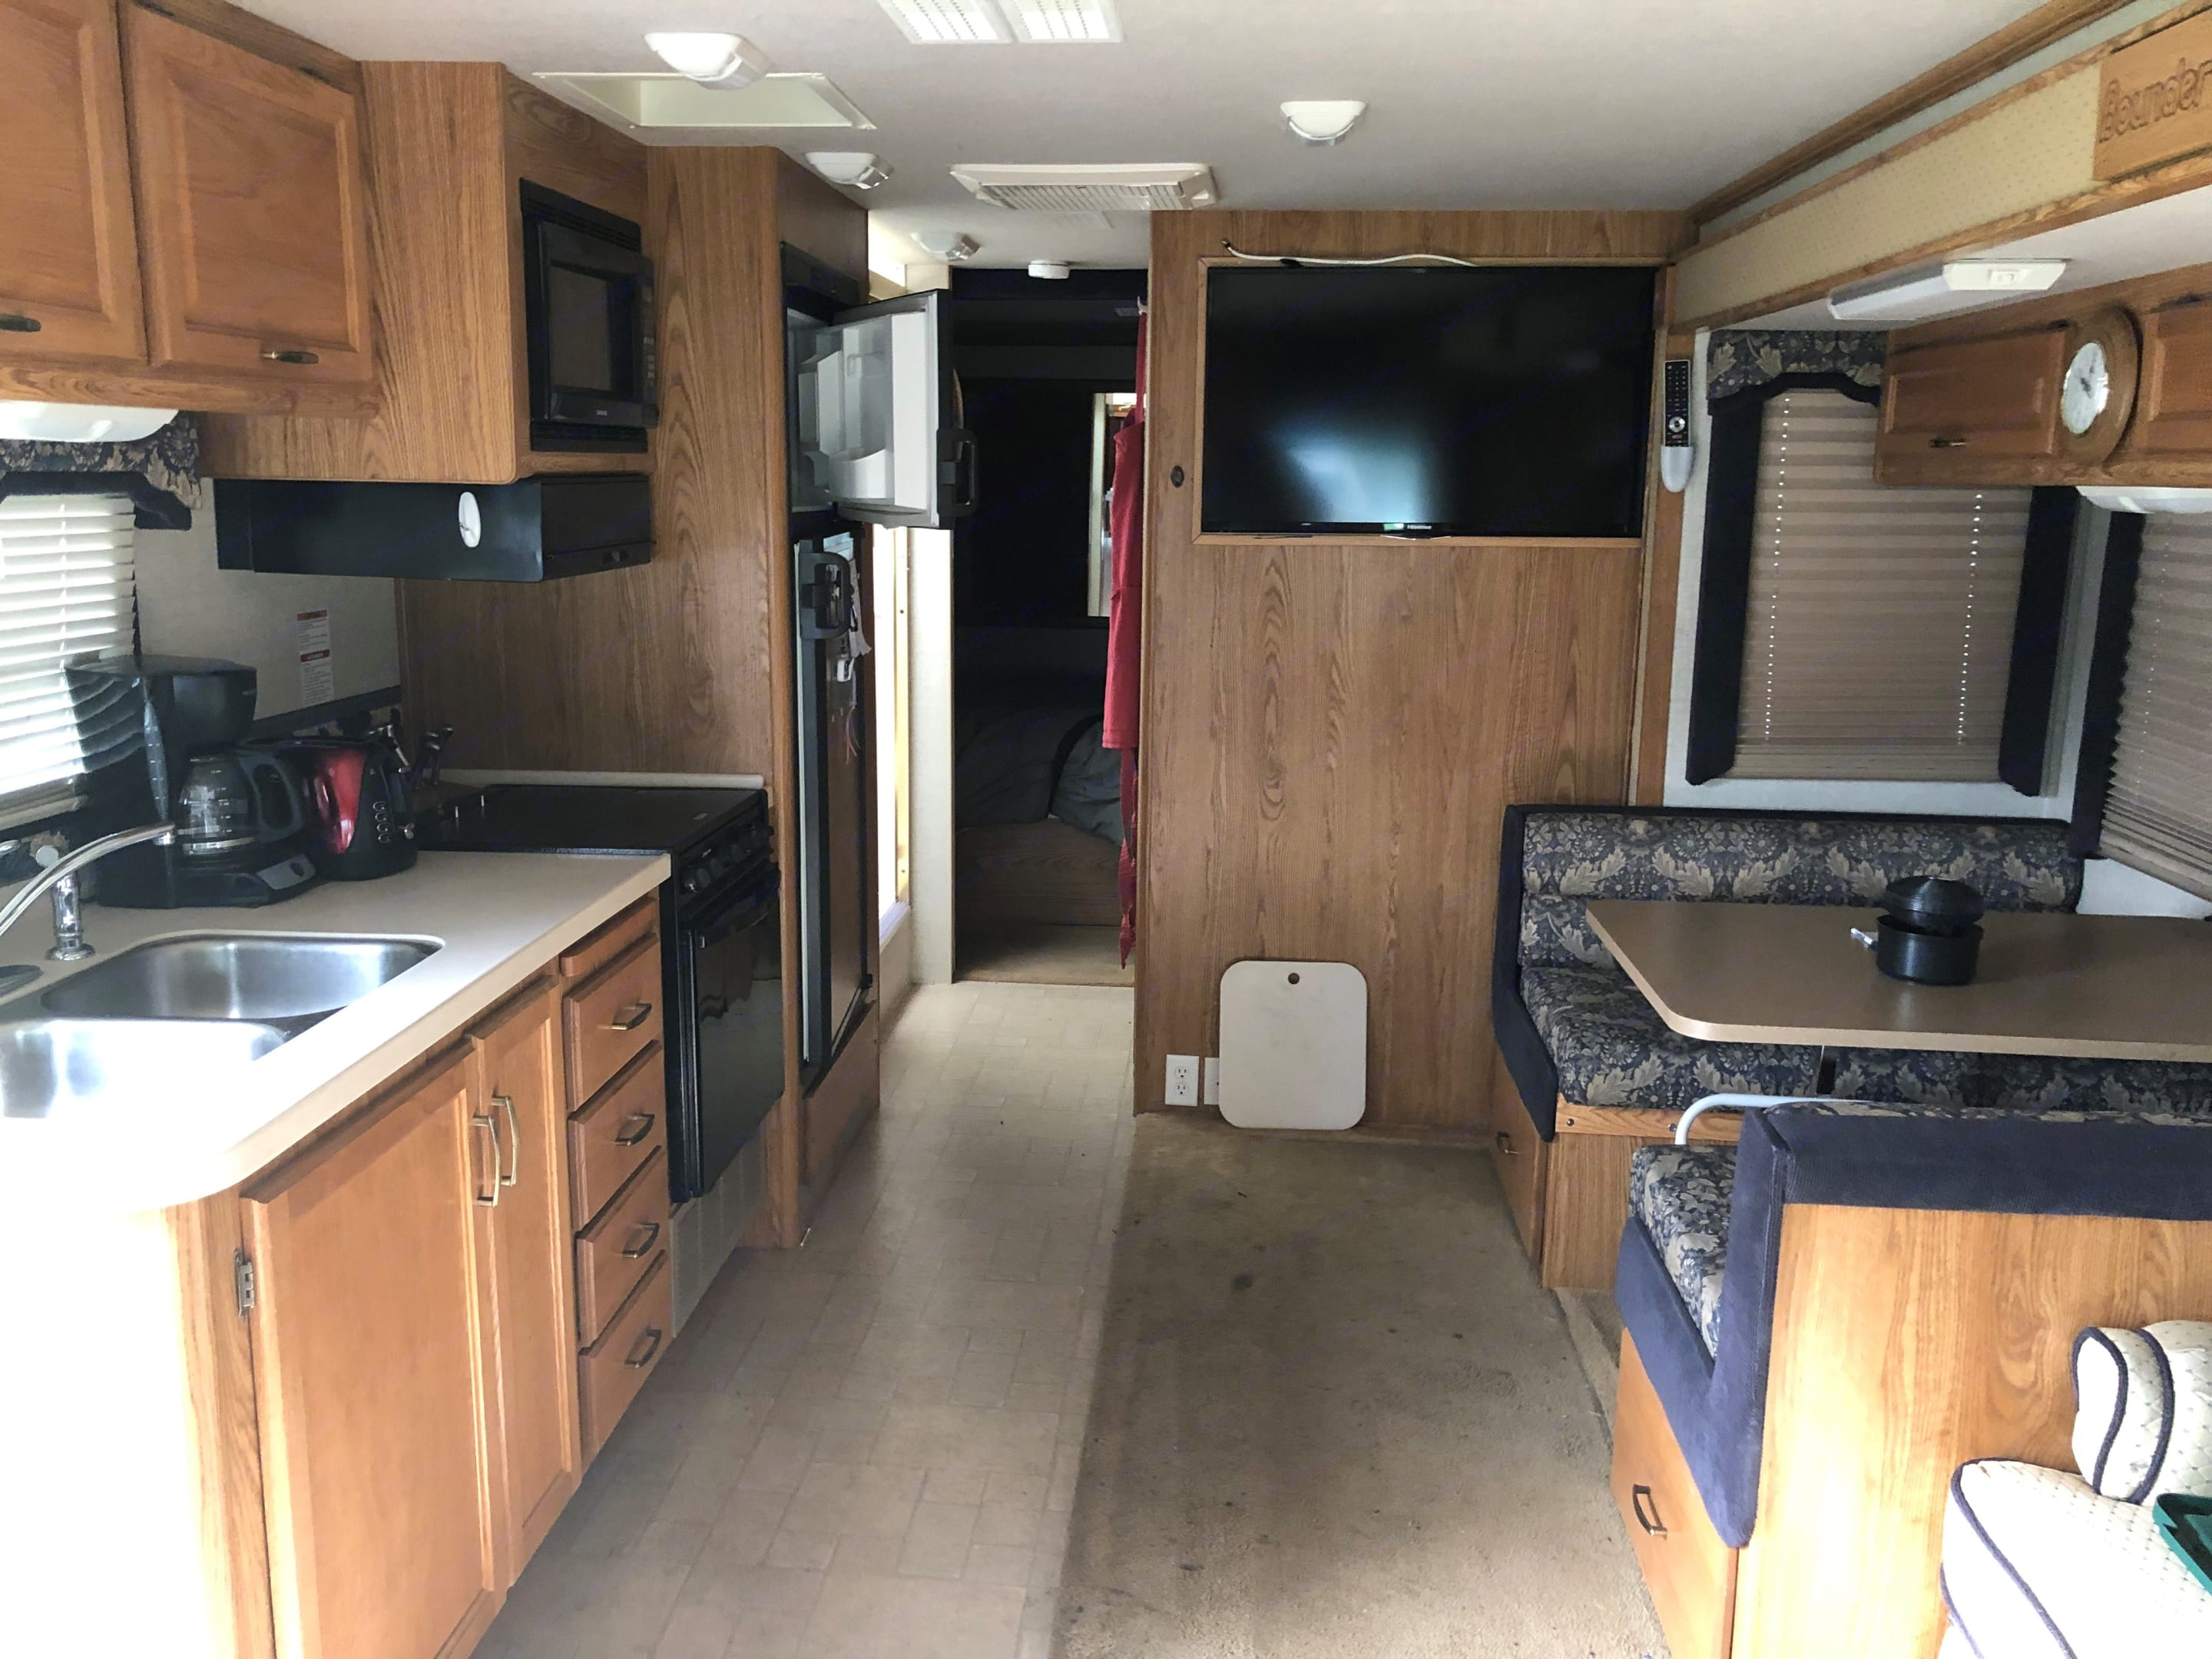 Living space, 48 inch screen tv, sink, range, stove, microwave and two phase refrigerator. Fleetwood Bounder 2004